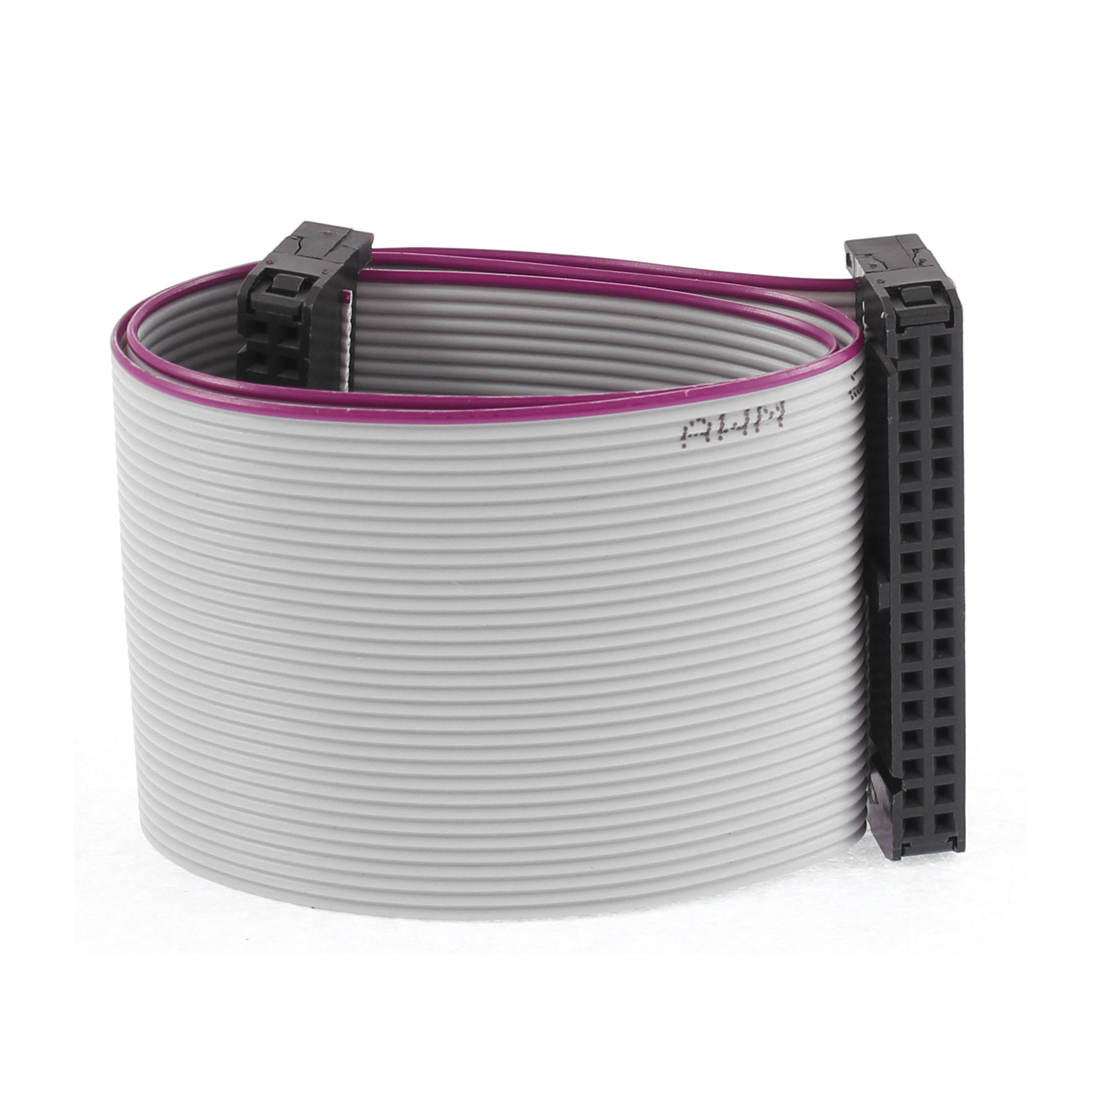 2.54mm Pitch 34 Pins 34 Wires F/F IDC Connector Flat Ribbon Cable 30cm Length